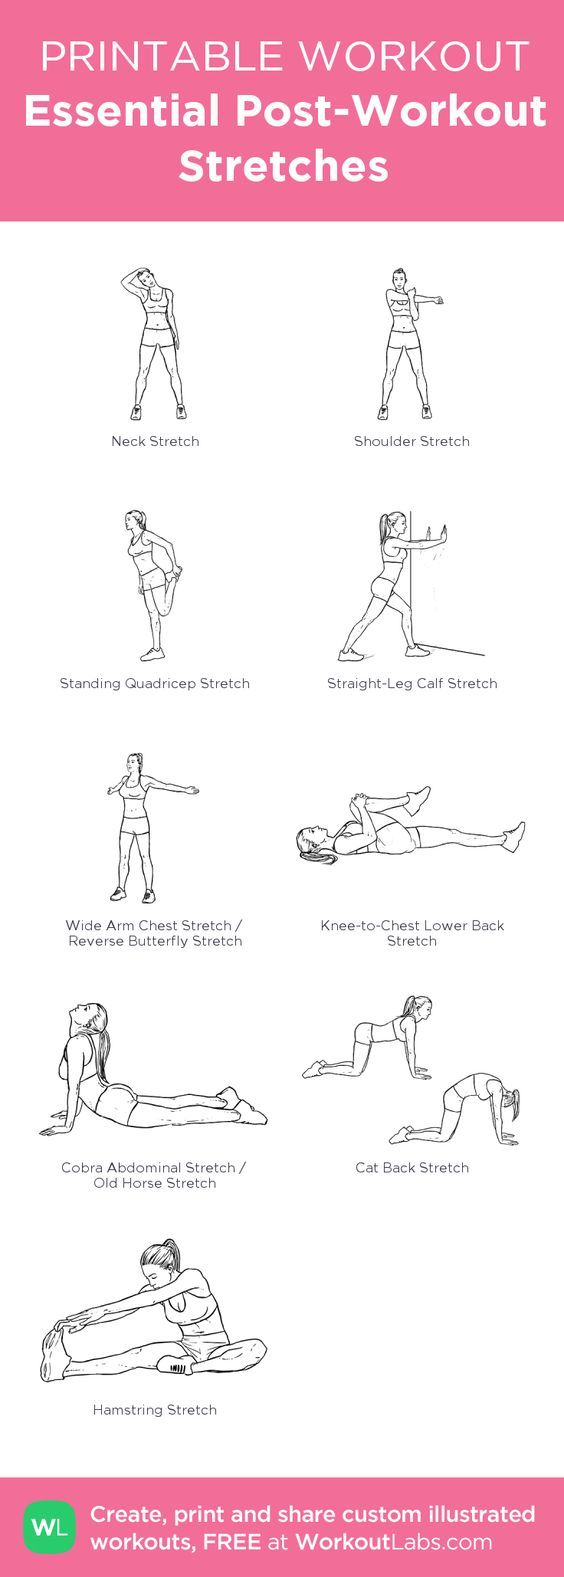 Essential Post-Workout Stretches – my custom workout created at WorkoutLabs.com • Click through to download as printable PDF! #customworkout: